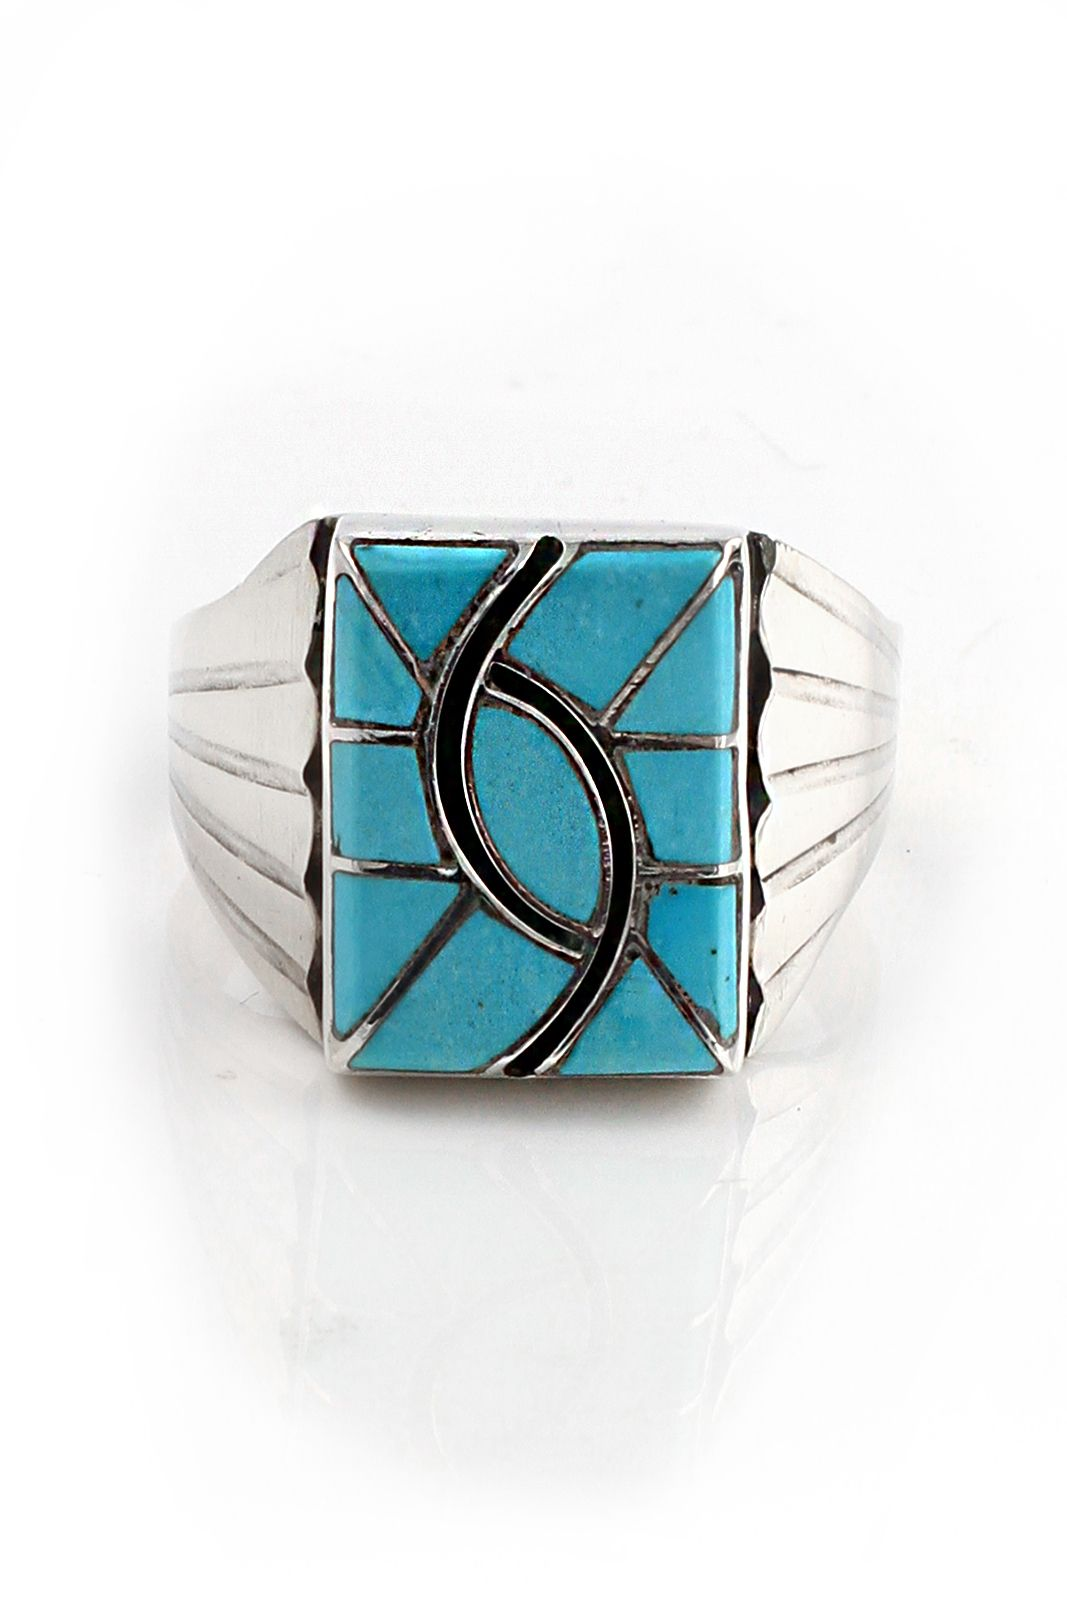 Zuni Woman/'s Inlaid Sterling Silver Ring signed N.LEE